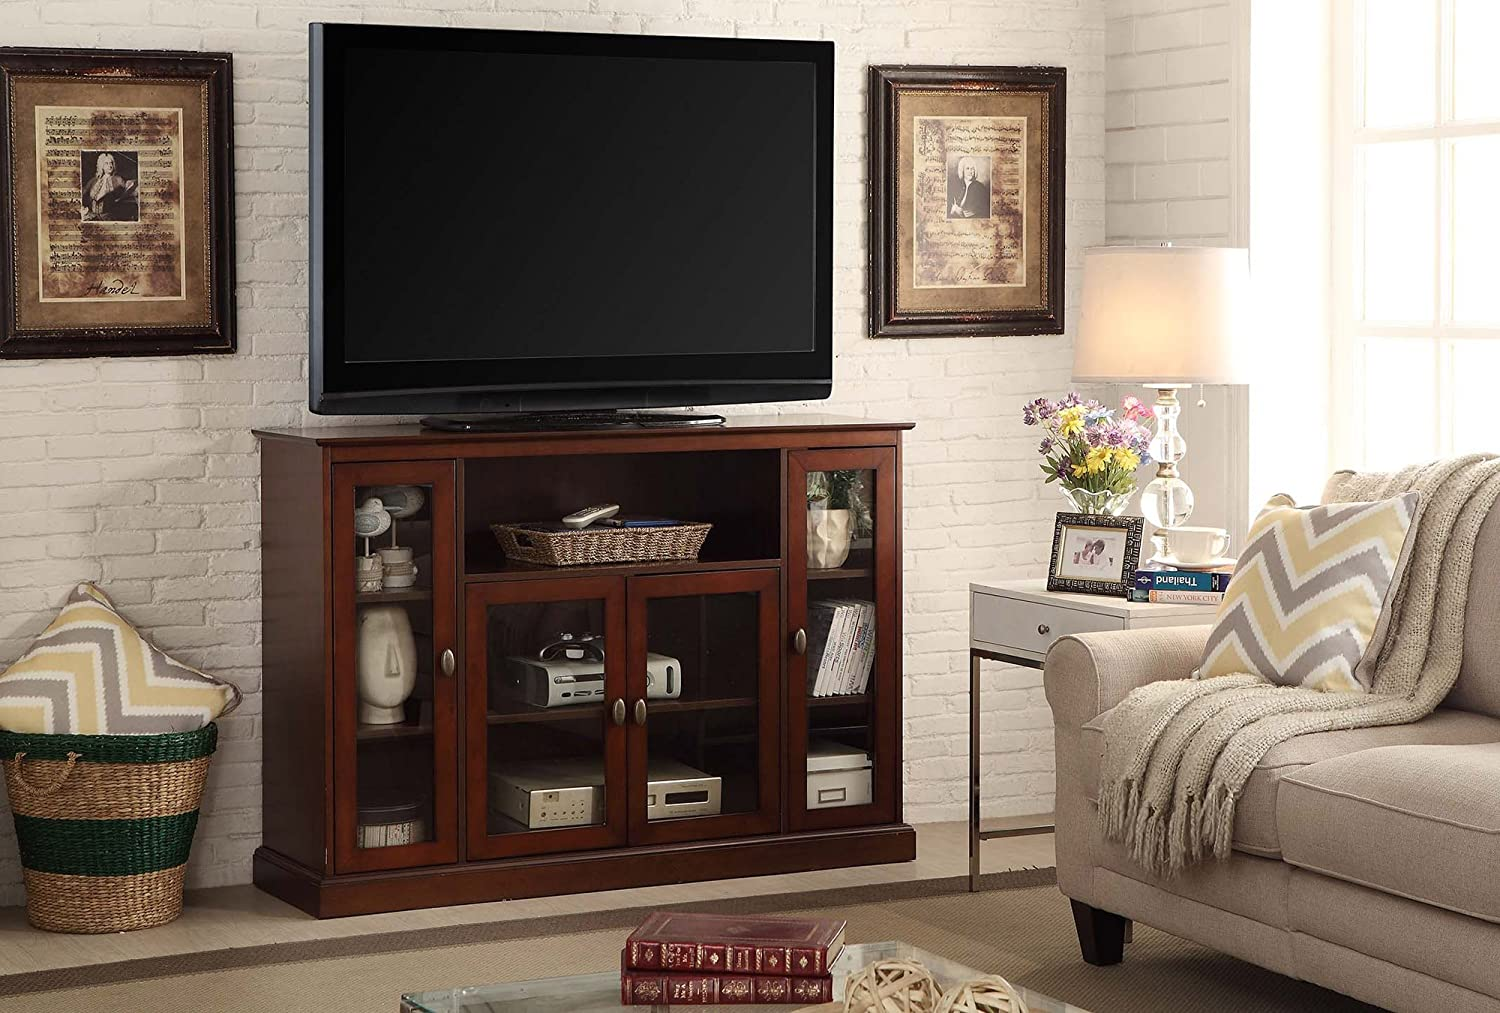 Details About Highboy Tall TV Stand Enclosed Media Storage Entertainment  Center Credenza New